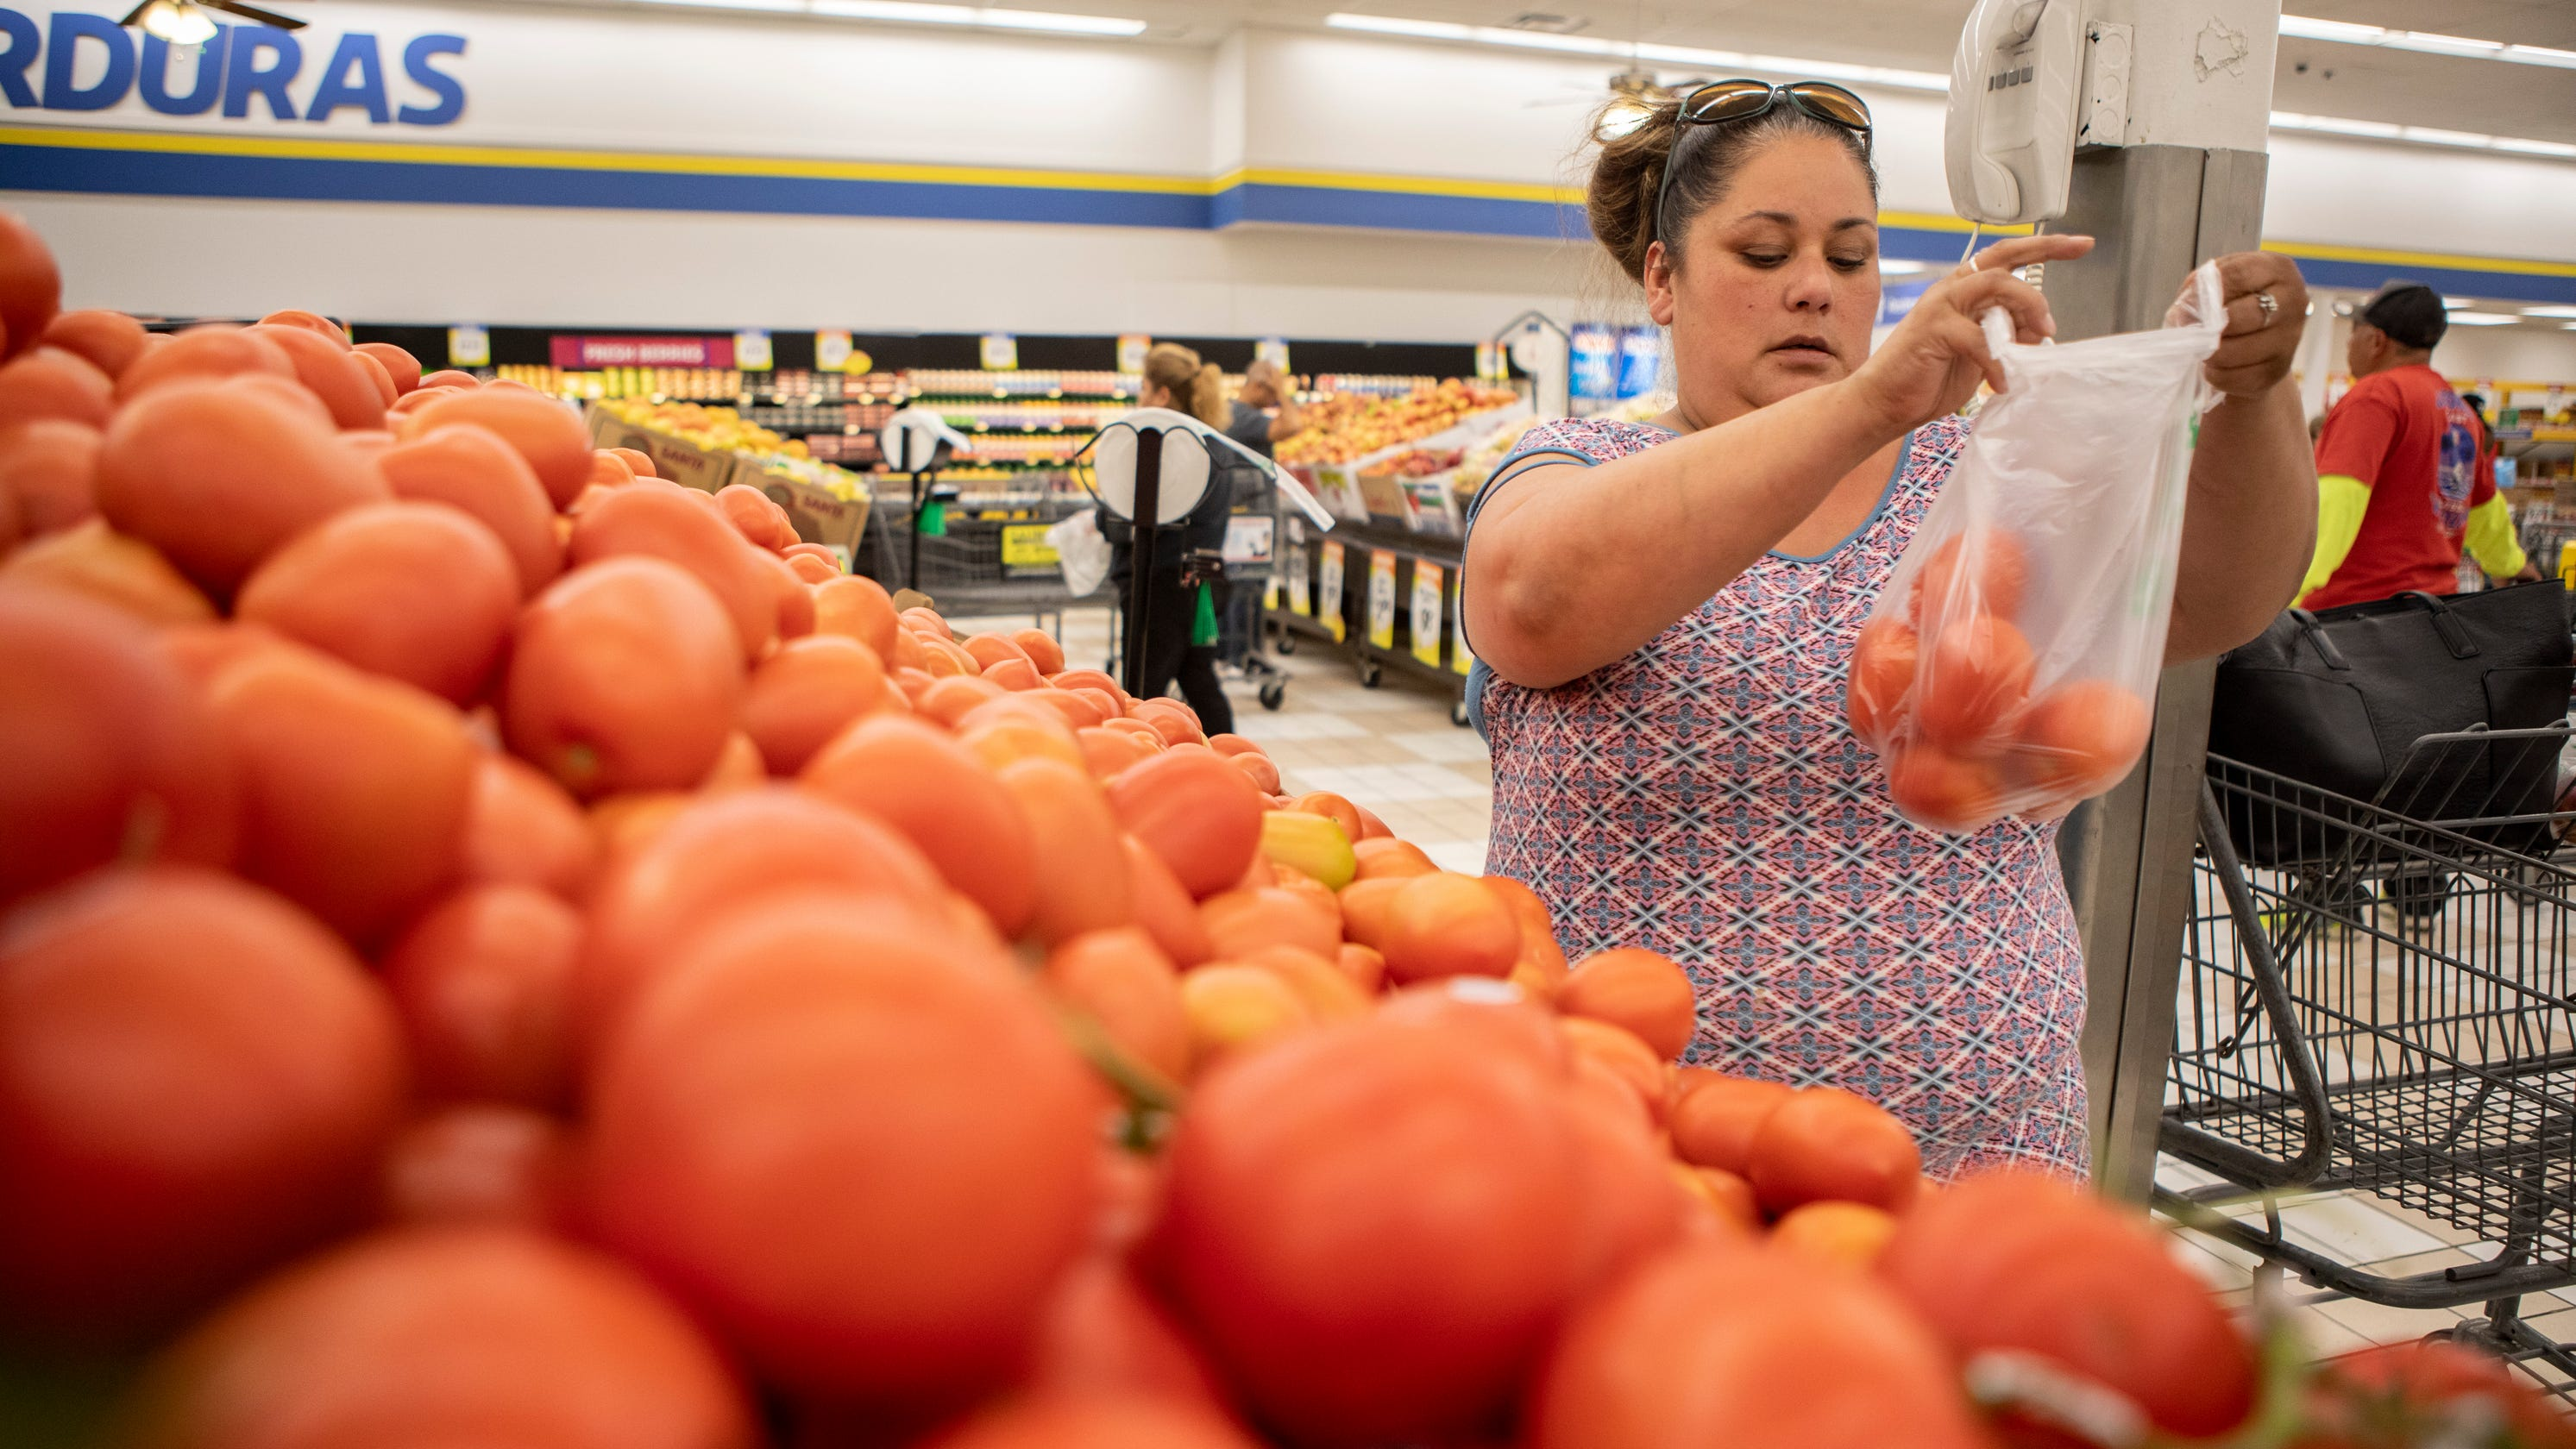 Why Californians could bear the brunt of Trump food stamp cuts